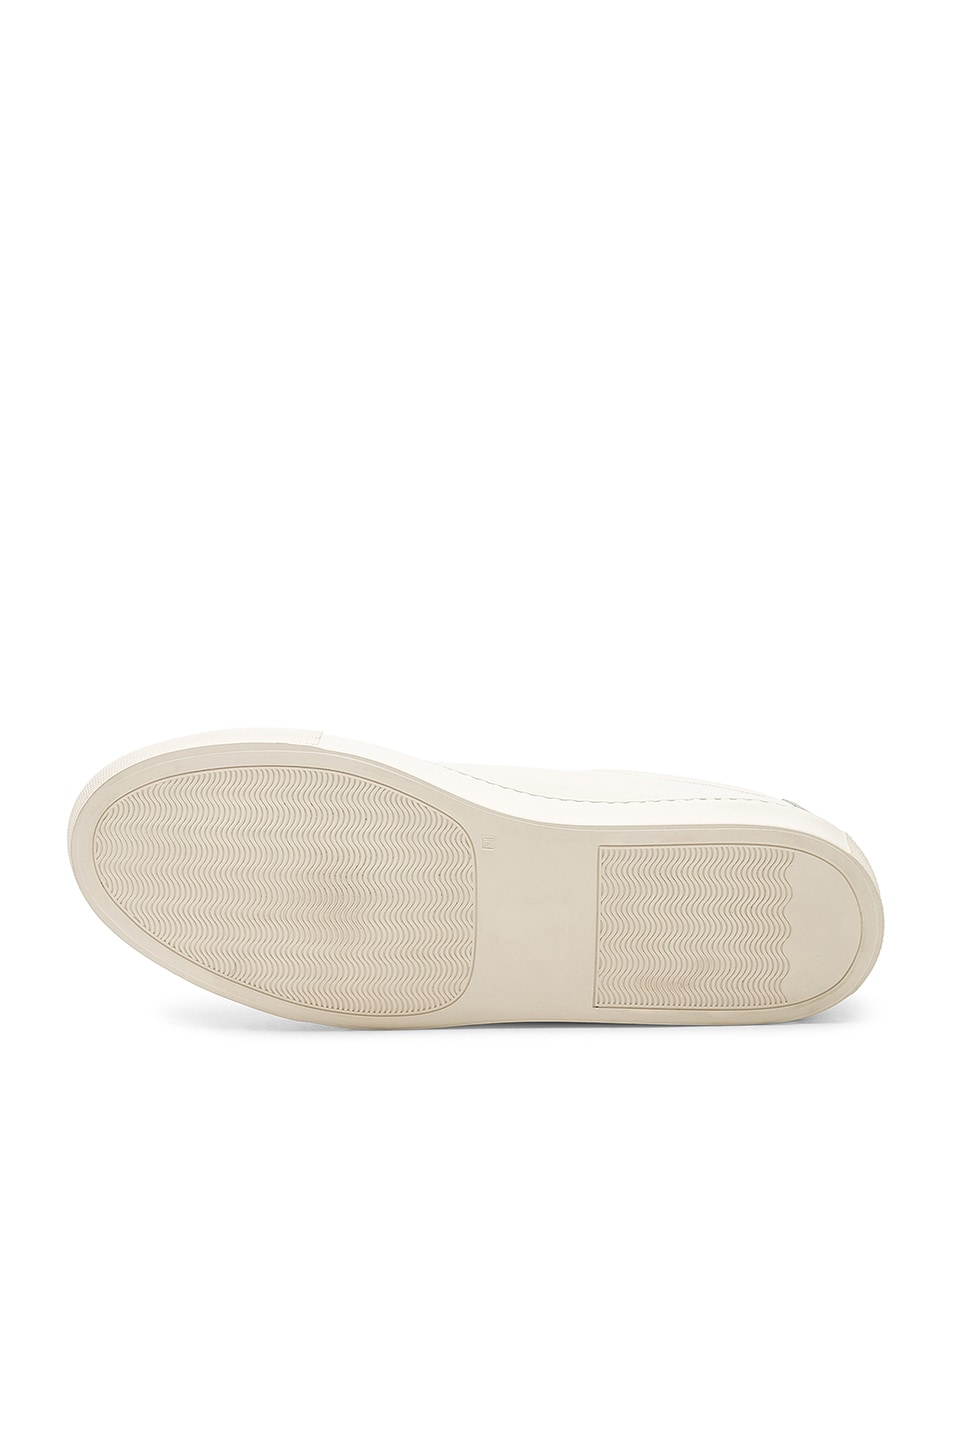 Image 6 of Common Projects Original Leather Achilles Low in Warm White